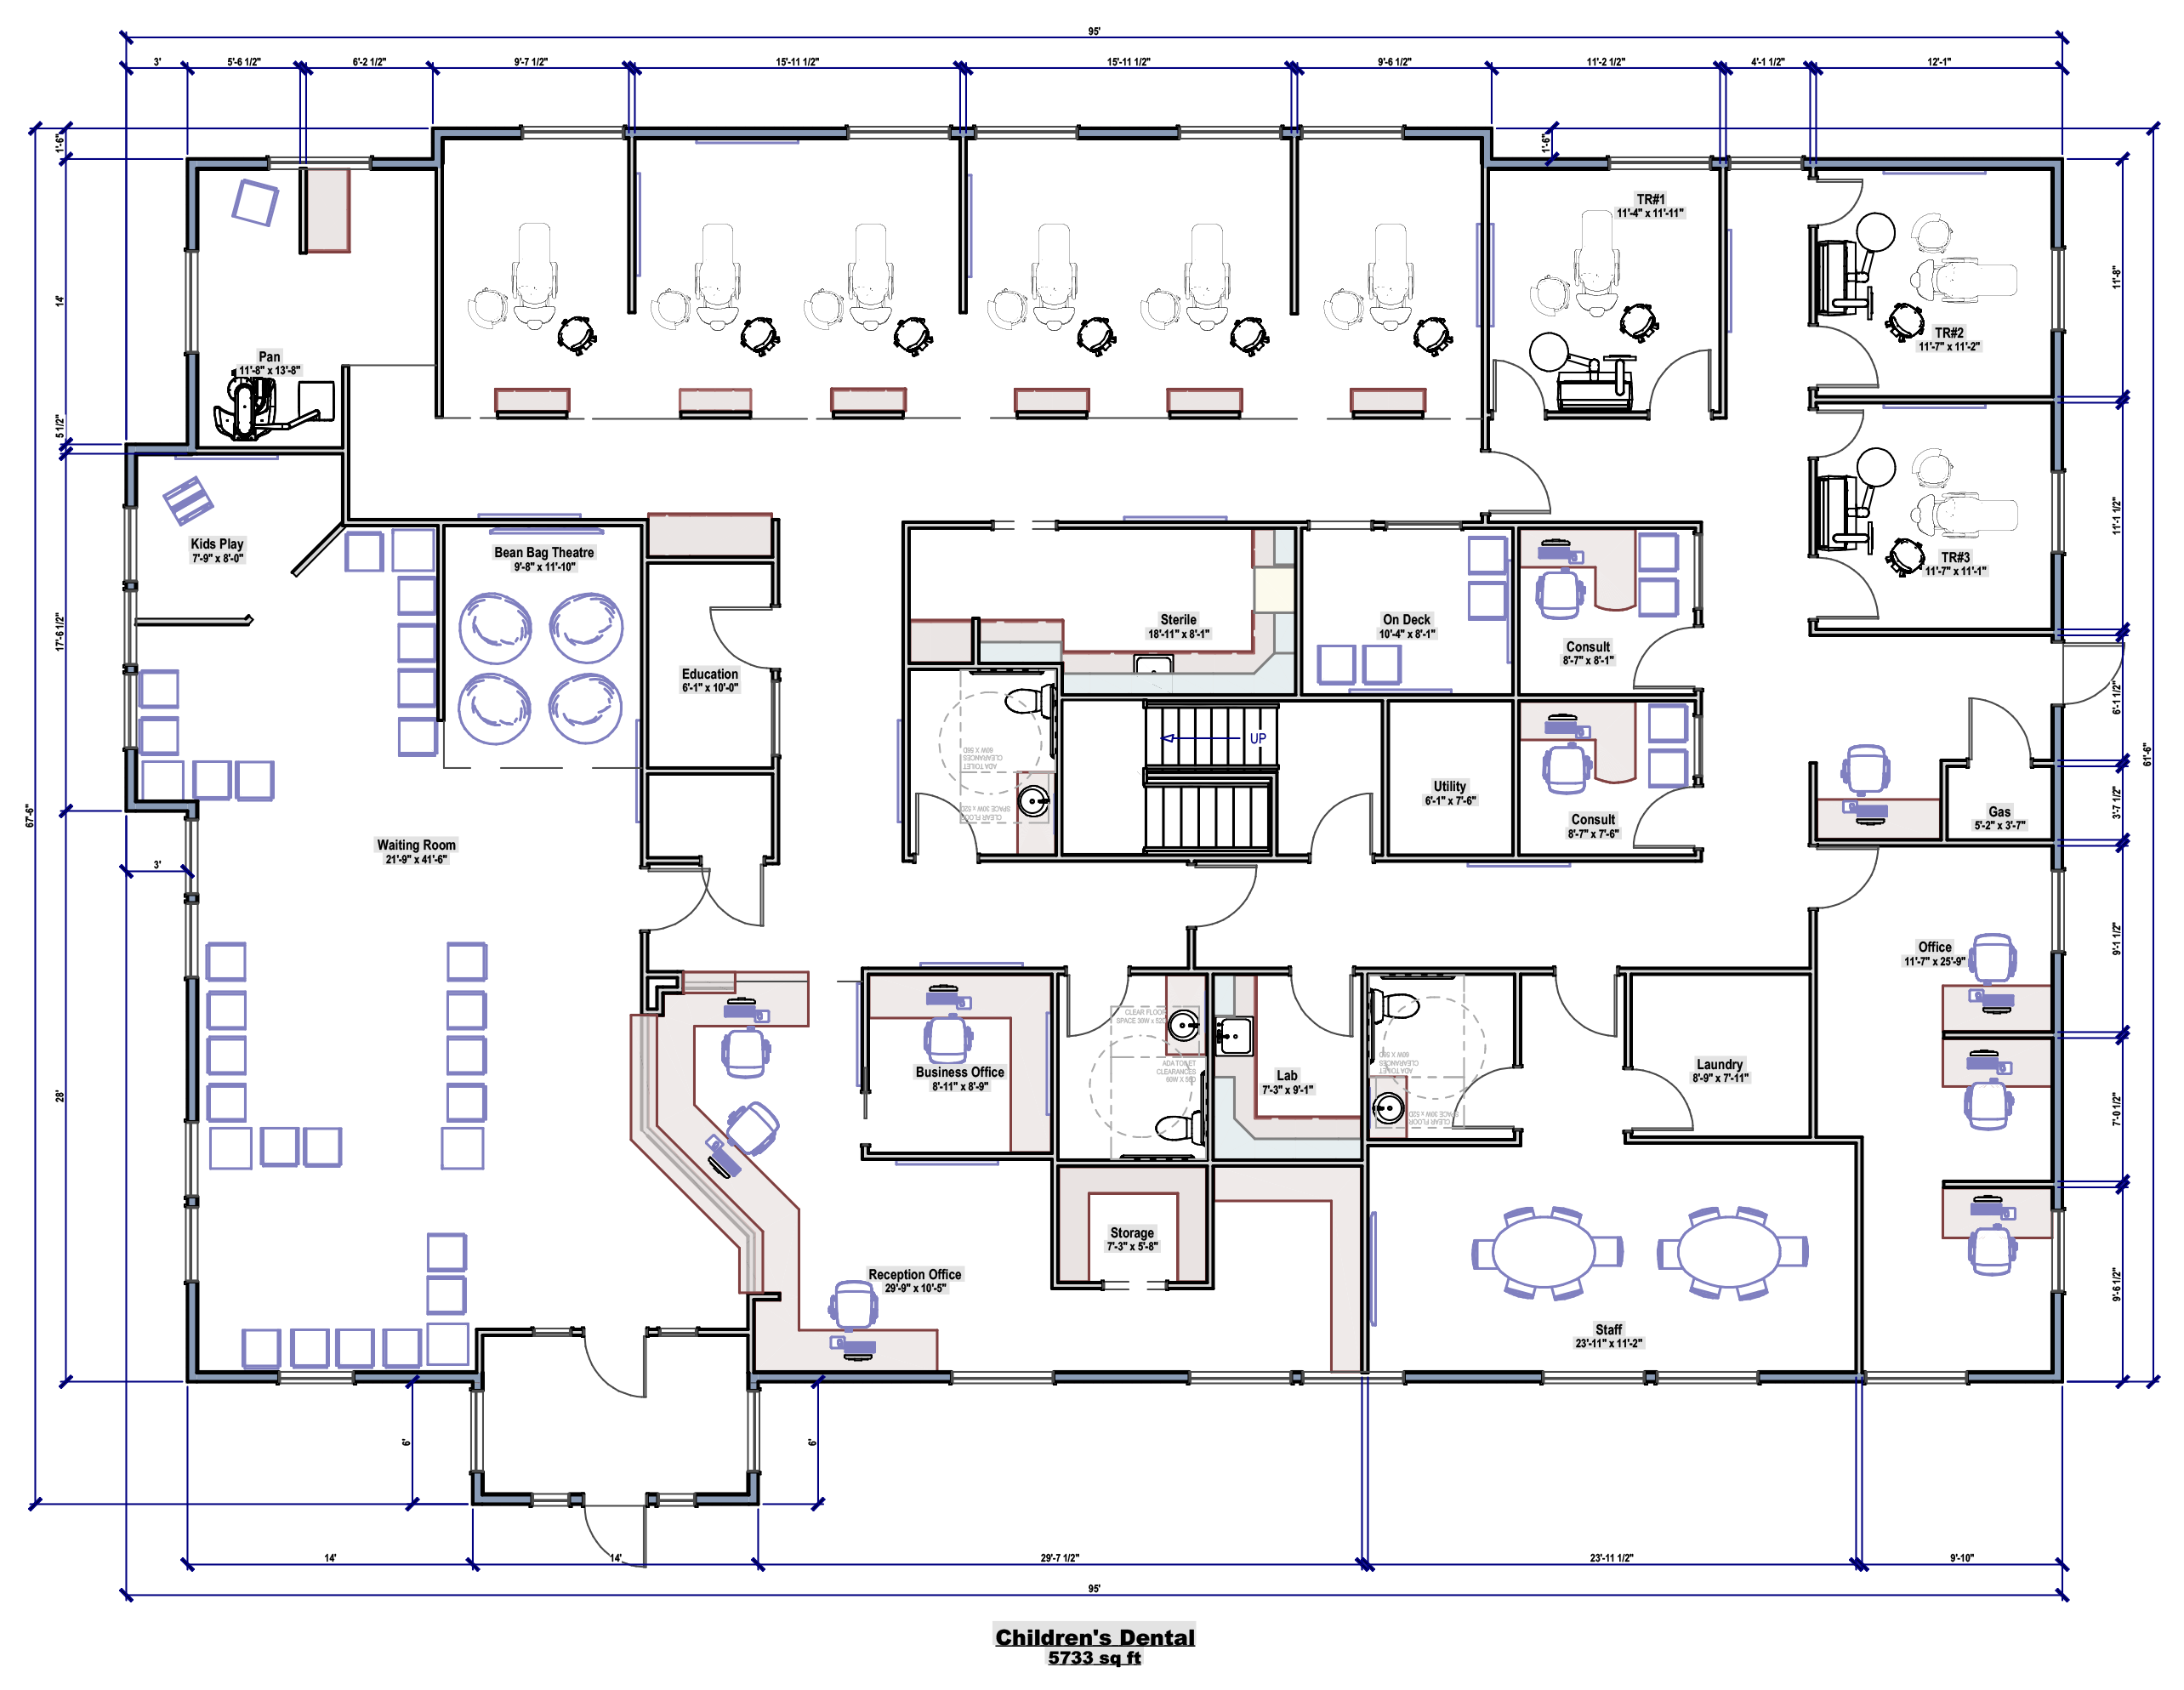 Children's Dental office planning and design – floorplan